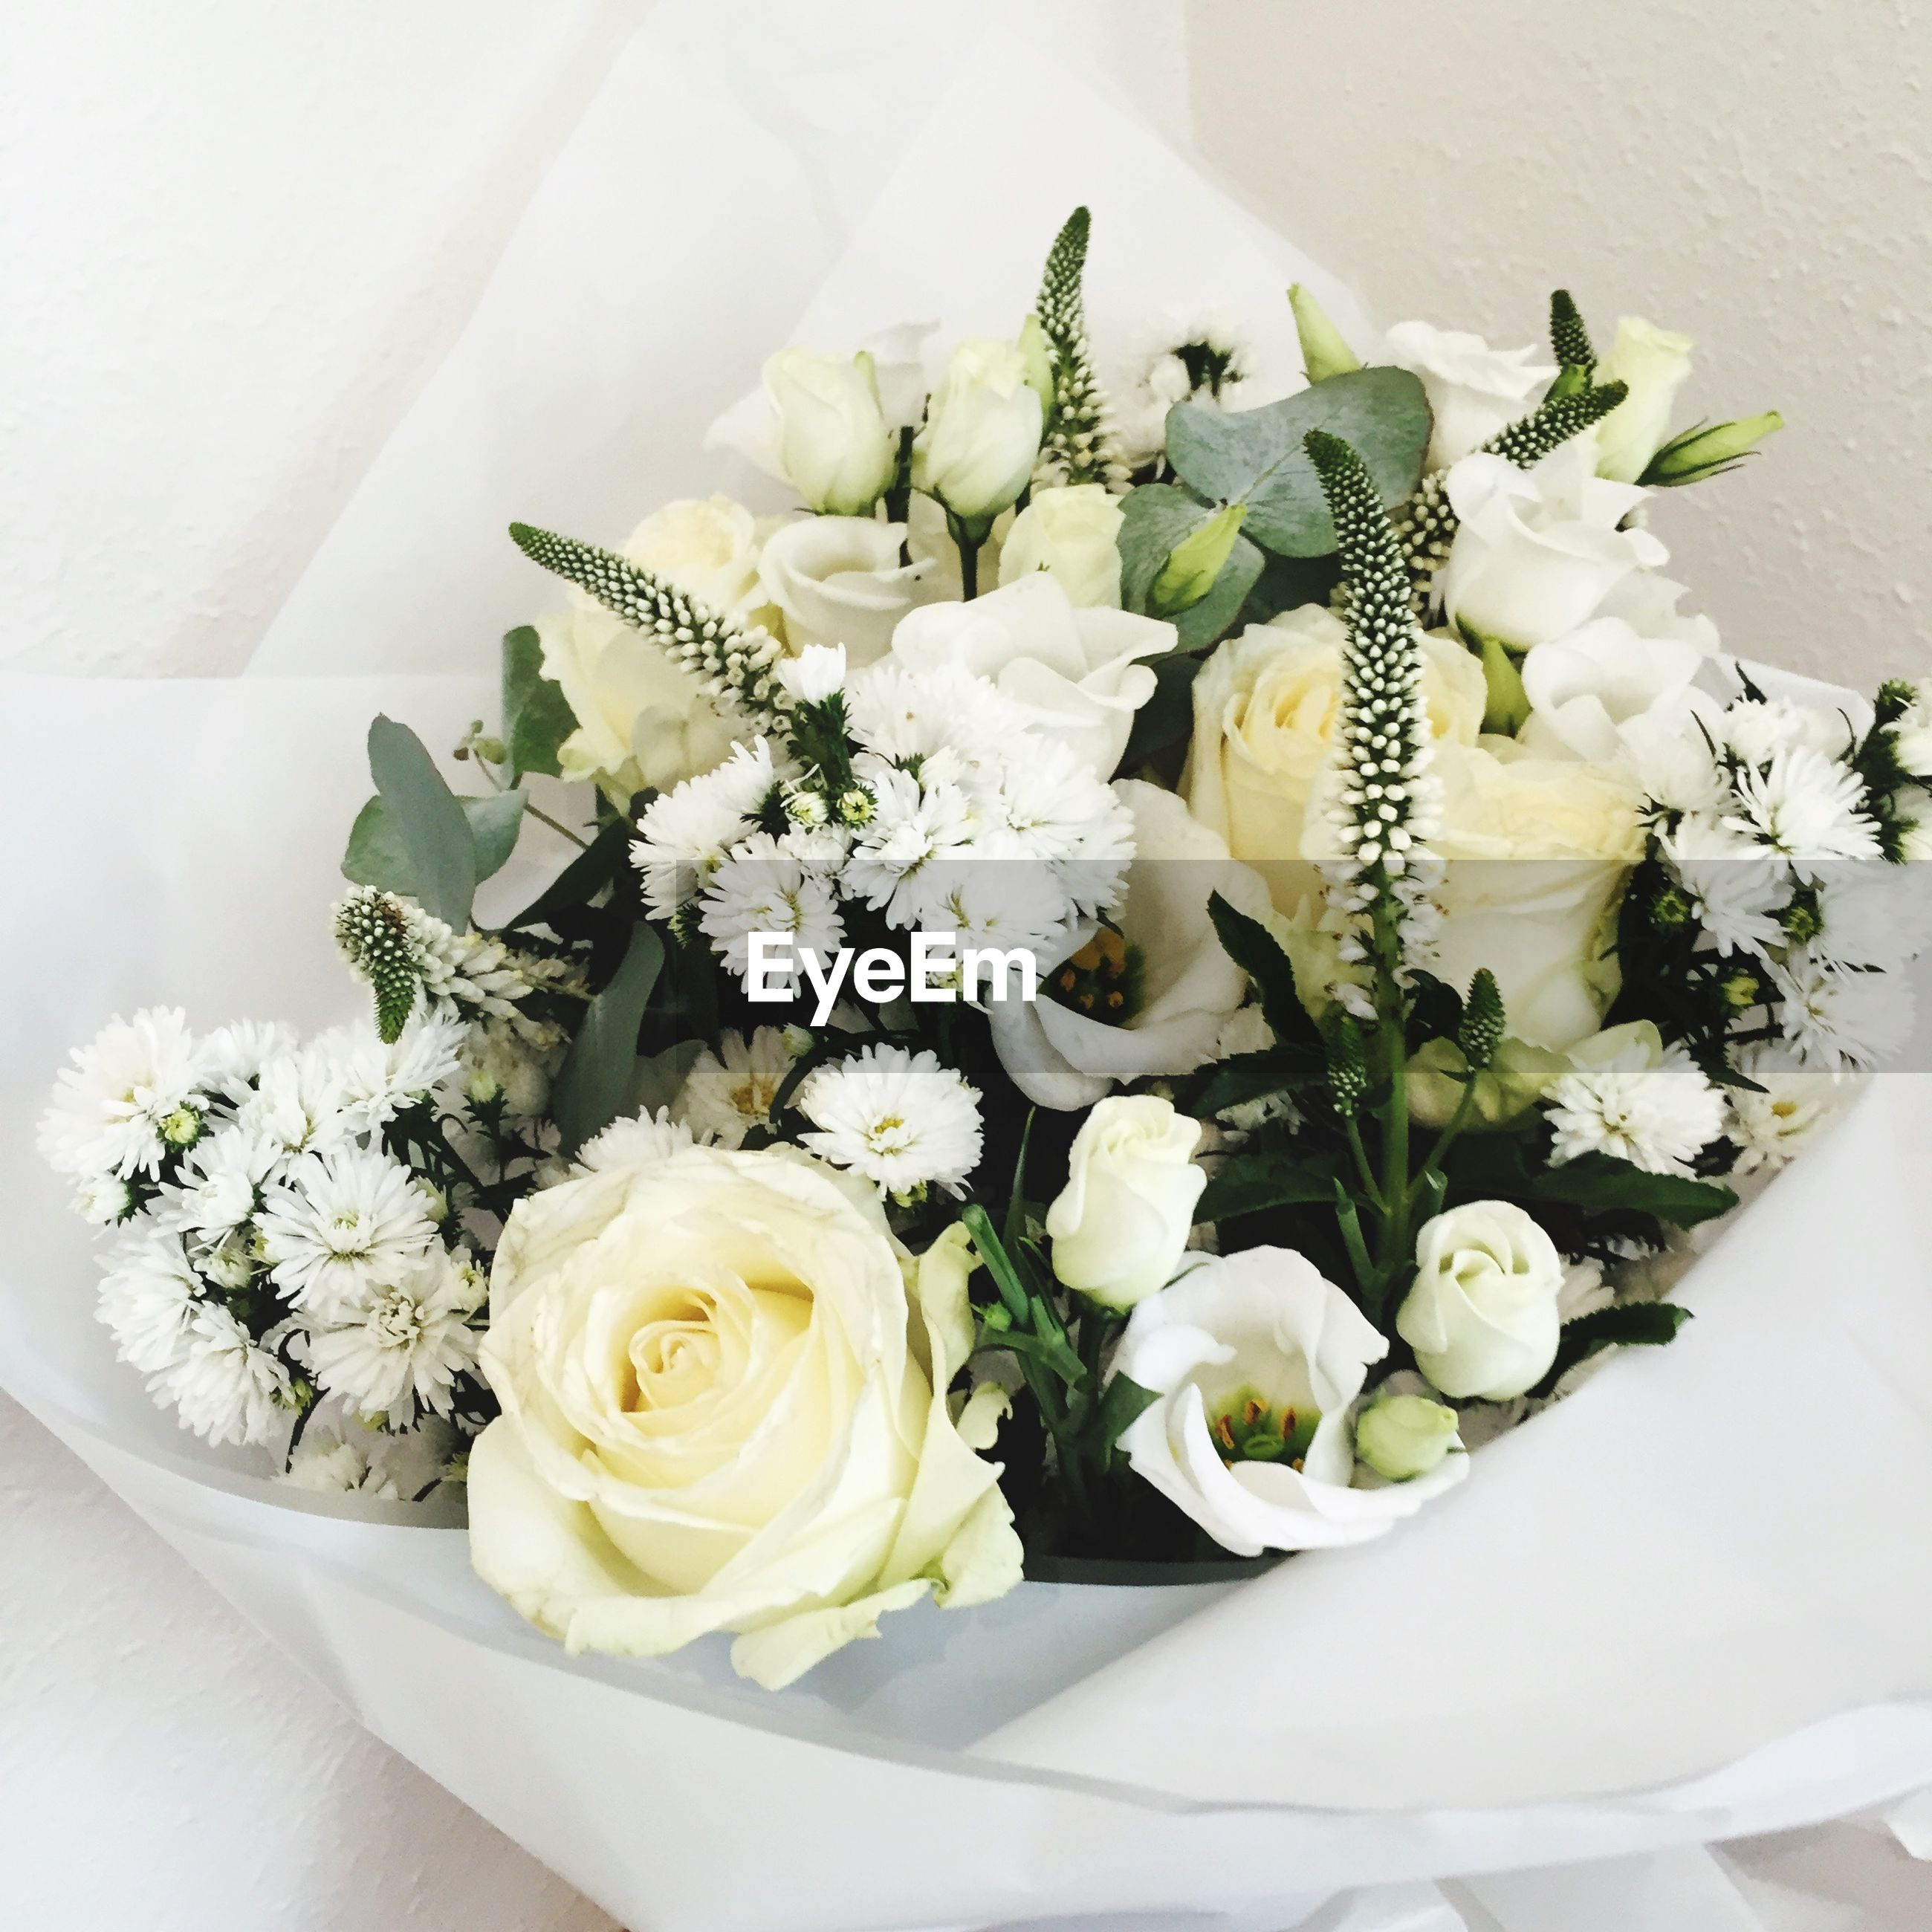 flower, indoors, freshness, high angle view, bouquet, fragility, petal, table, still life, flower head, white color, vase, bunch of flowers, close-up, plant, variation, decoration, beauty in nature, flower arrangement, directly above